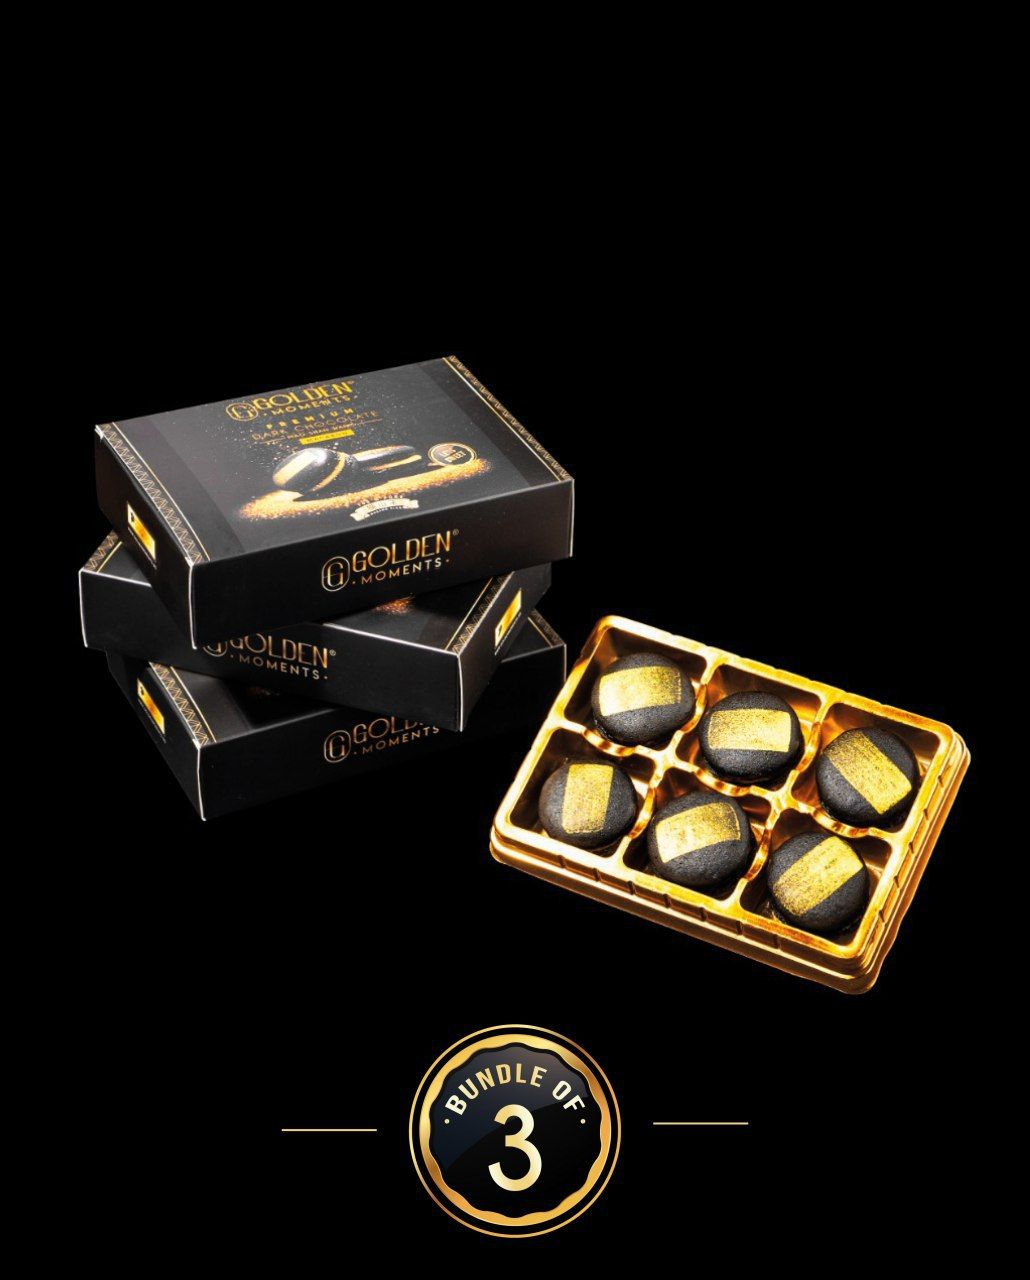 Premium Dark Chocolate Mao Shan Wang Macaron - Bundle of 3